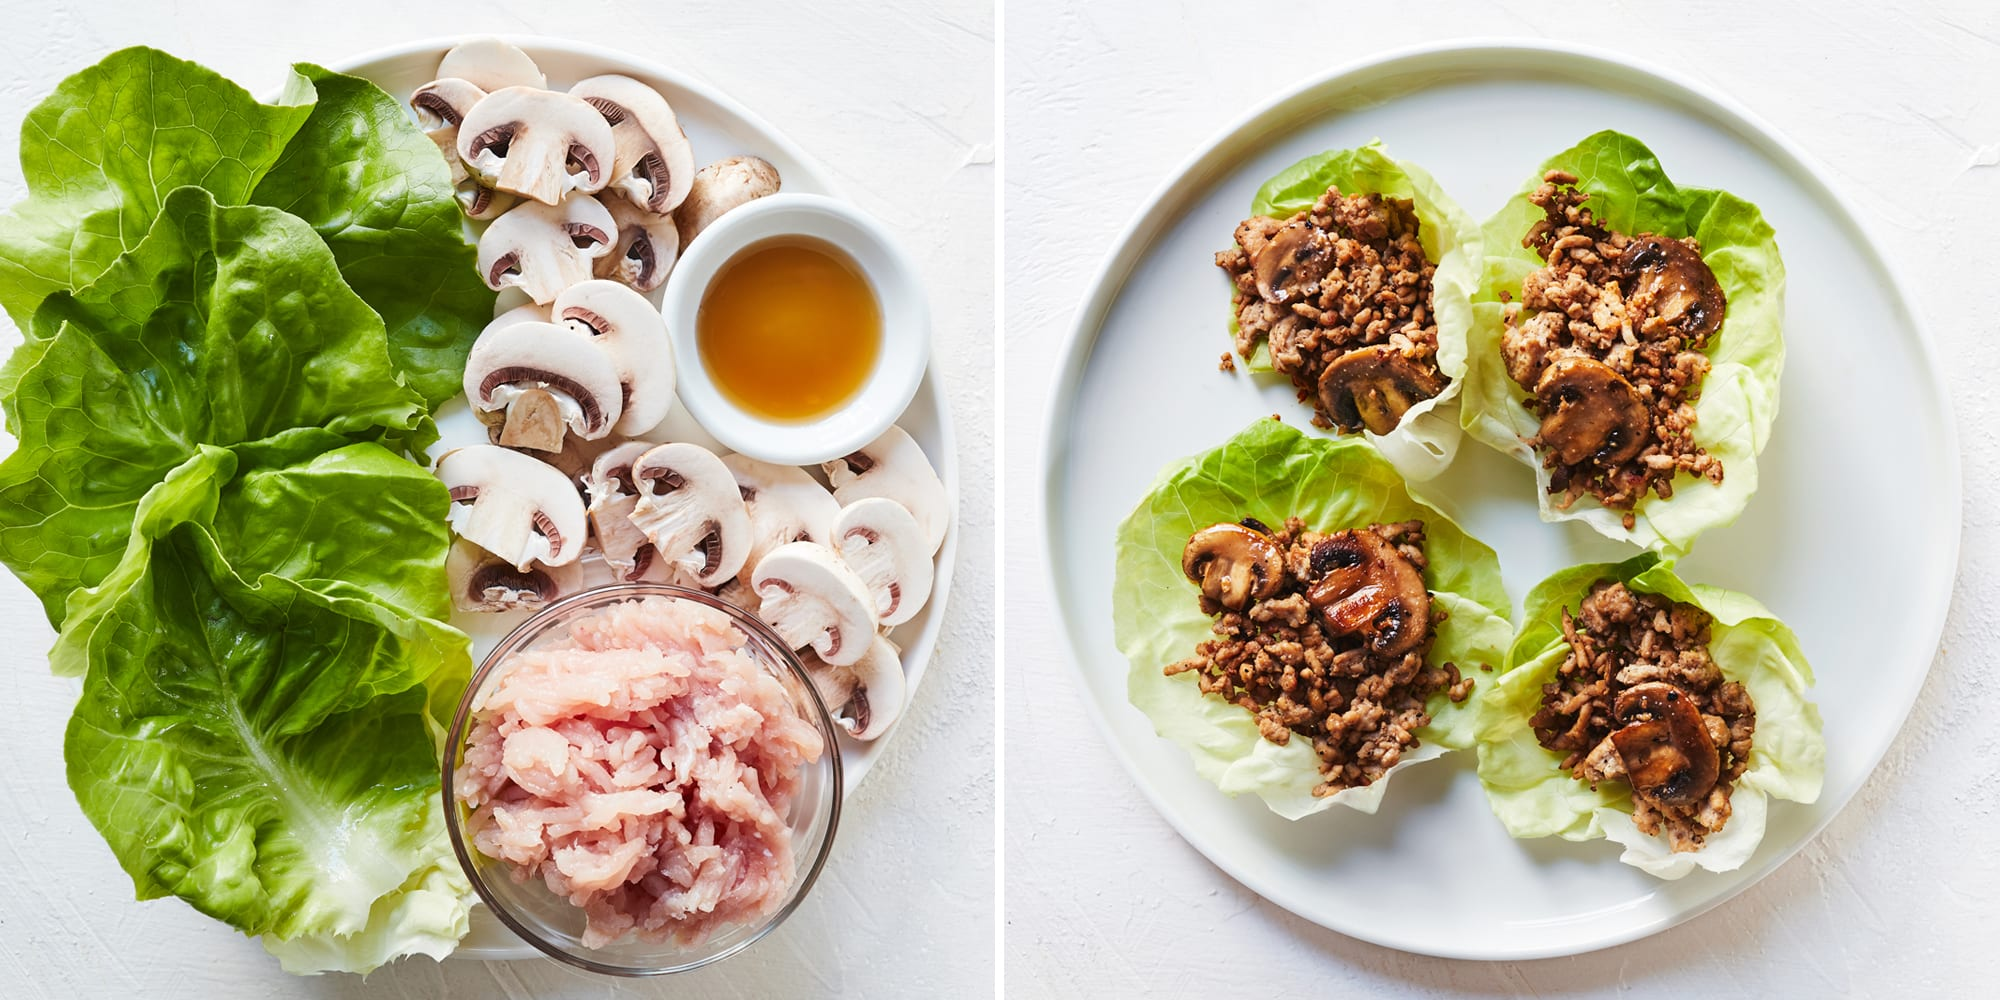 4-Ingredient Ground Turkey Lettuce Wraps